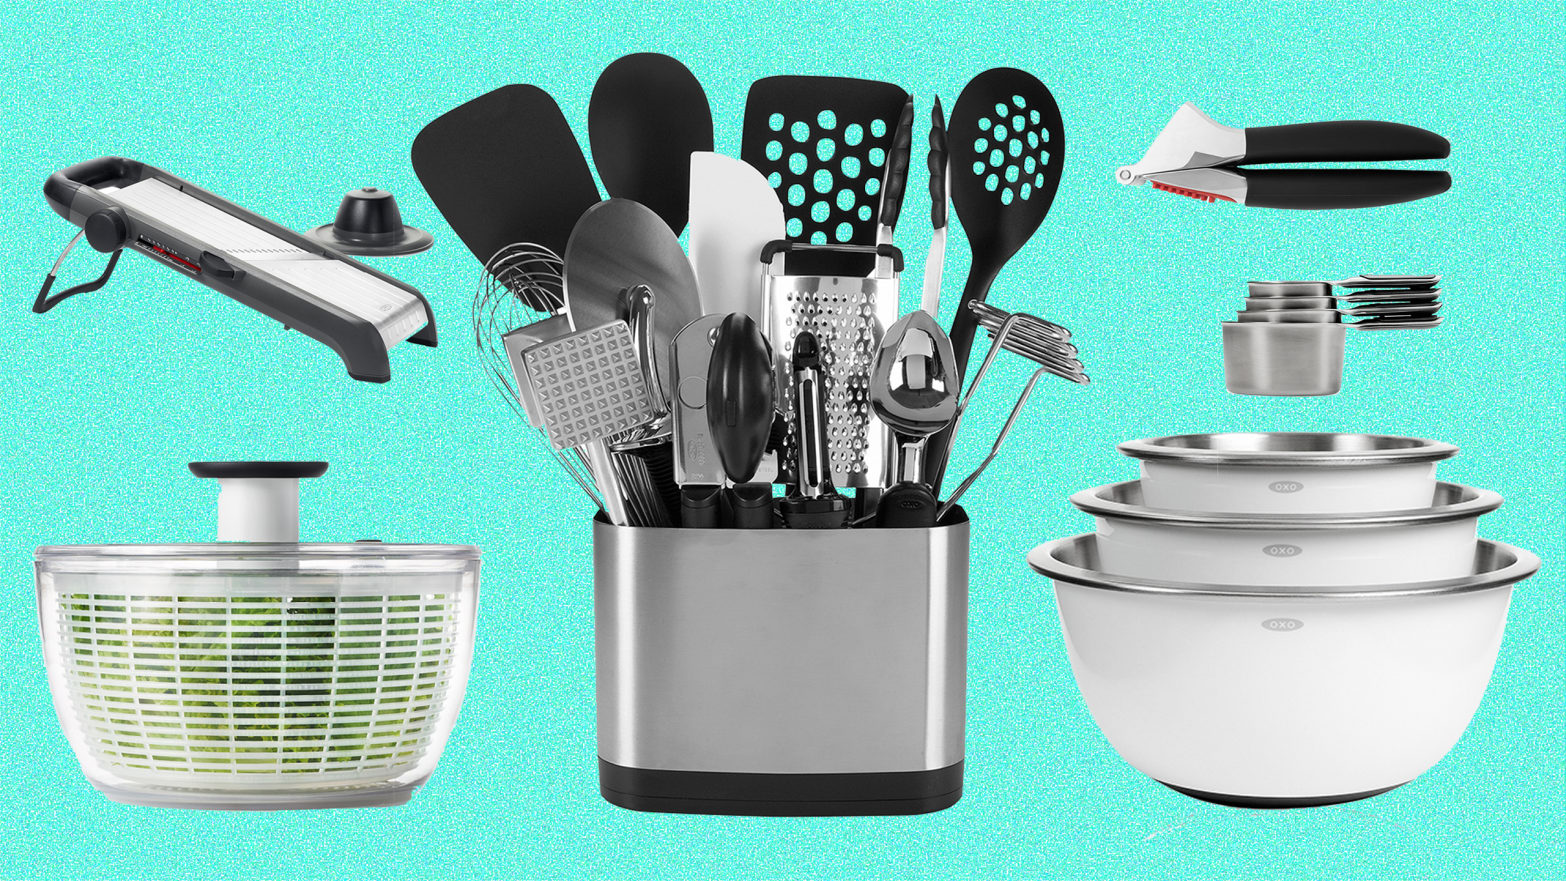 Oxo Kitchenware Is Up To 40 Off During Macy S Big Sale